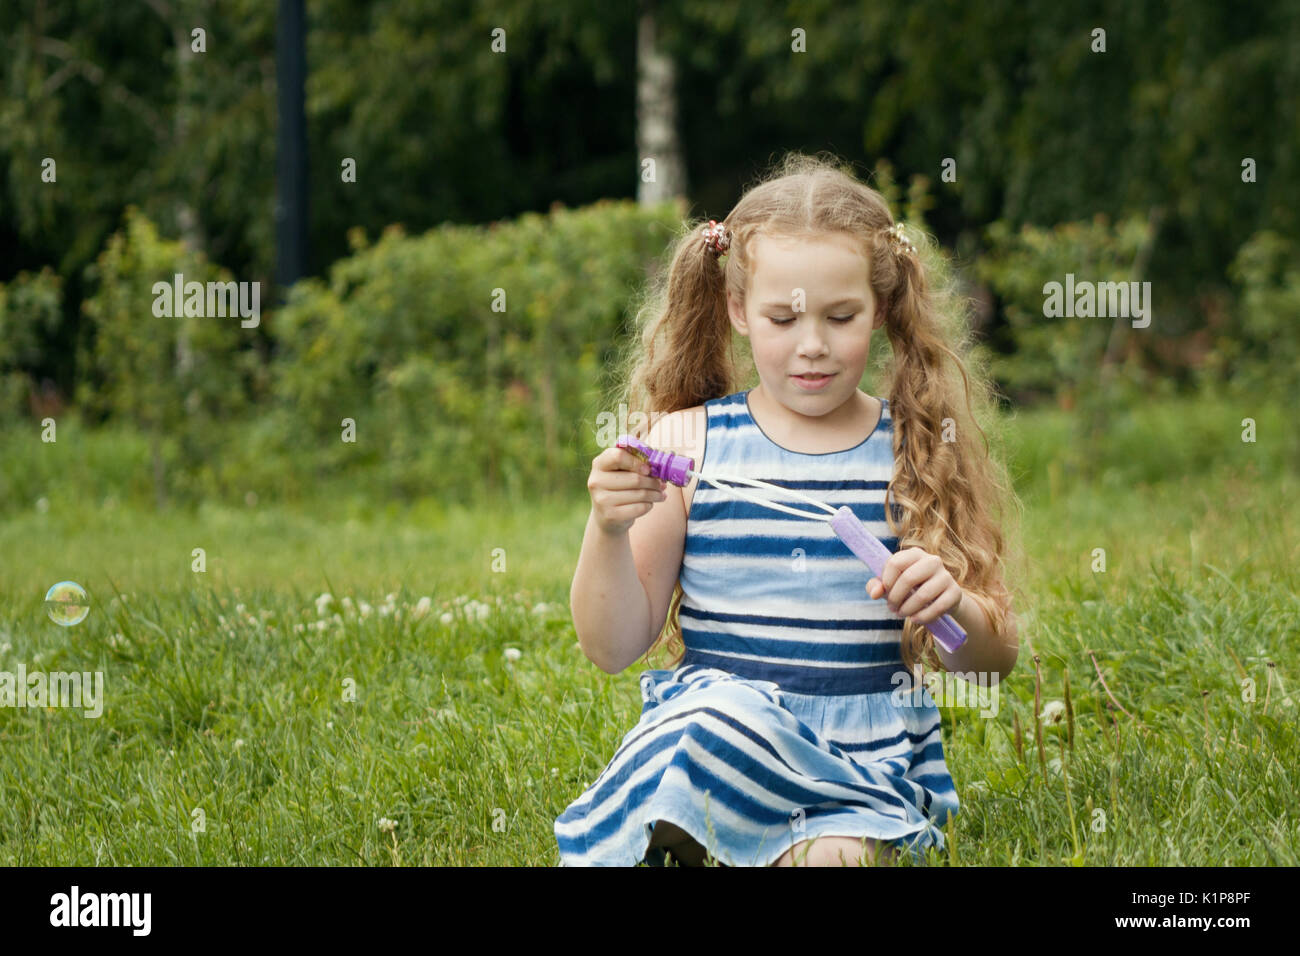 Little child girl playing with soap bubble in summer park - Stock Image